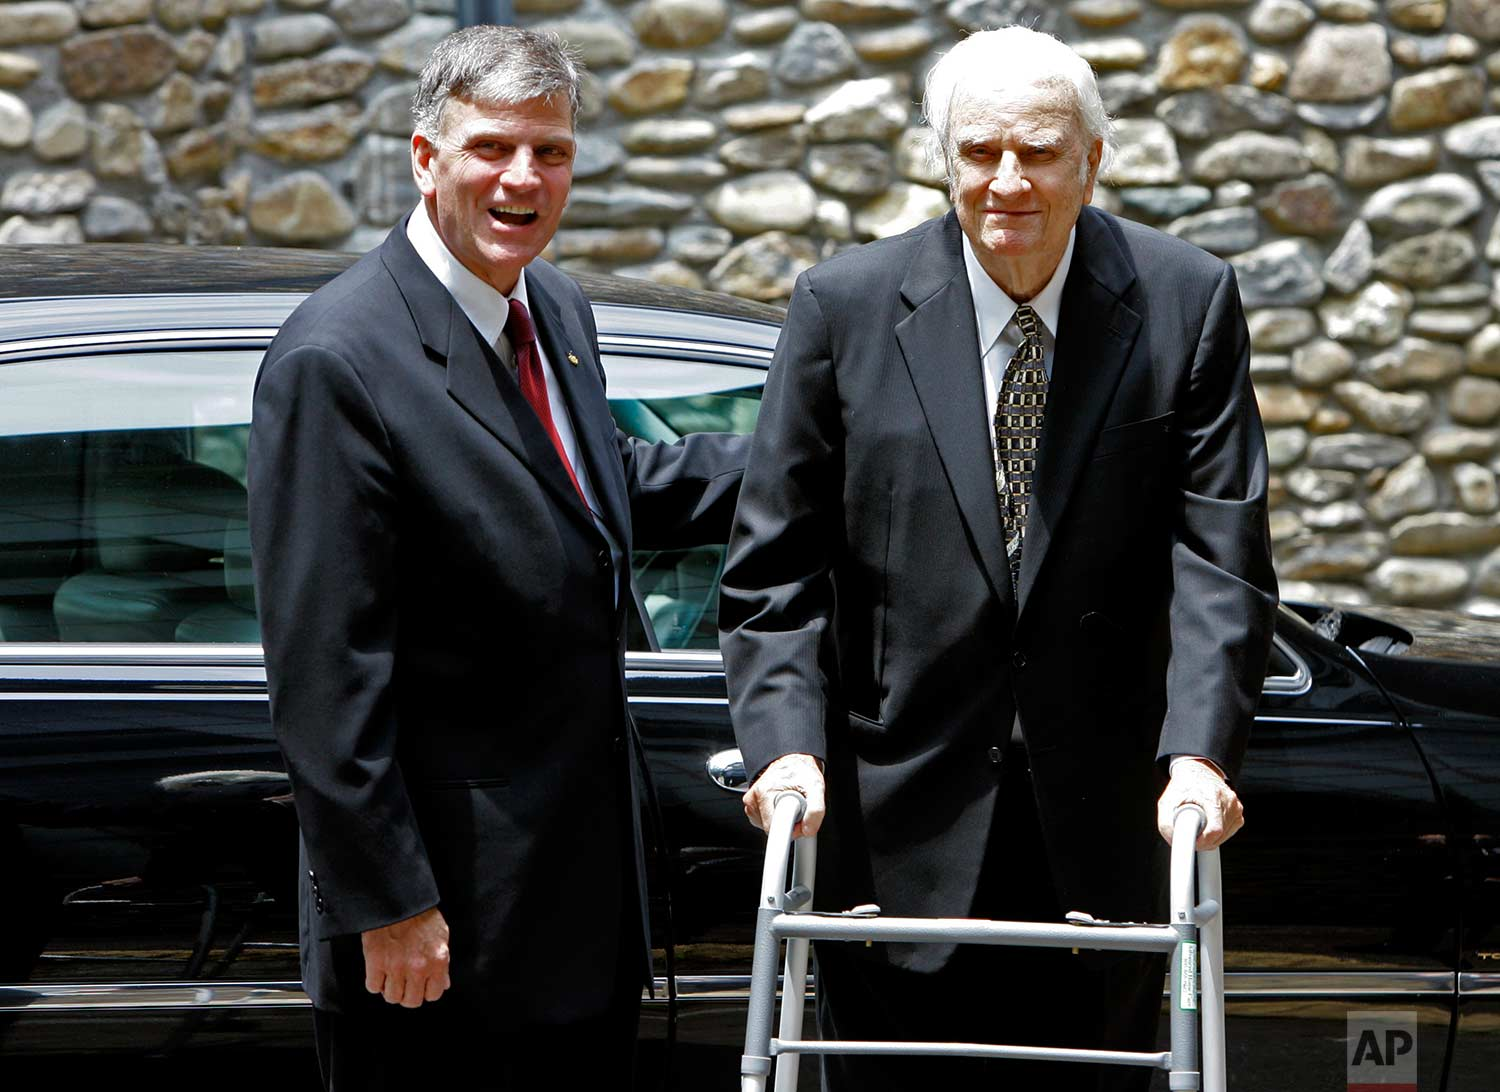 Billy Graham, right, arrives with his son, Franklin Graham, left, for a memorial service for Ruth Graham in Montreat, N.C., Saturday, June 16, 2007.(AP Photo/Chuck Burton)